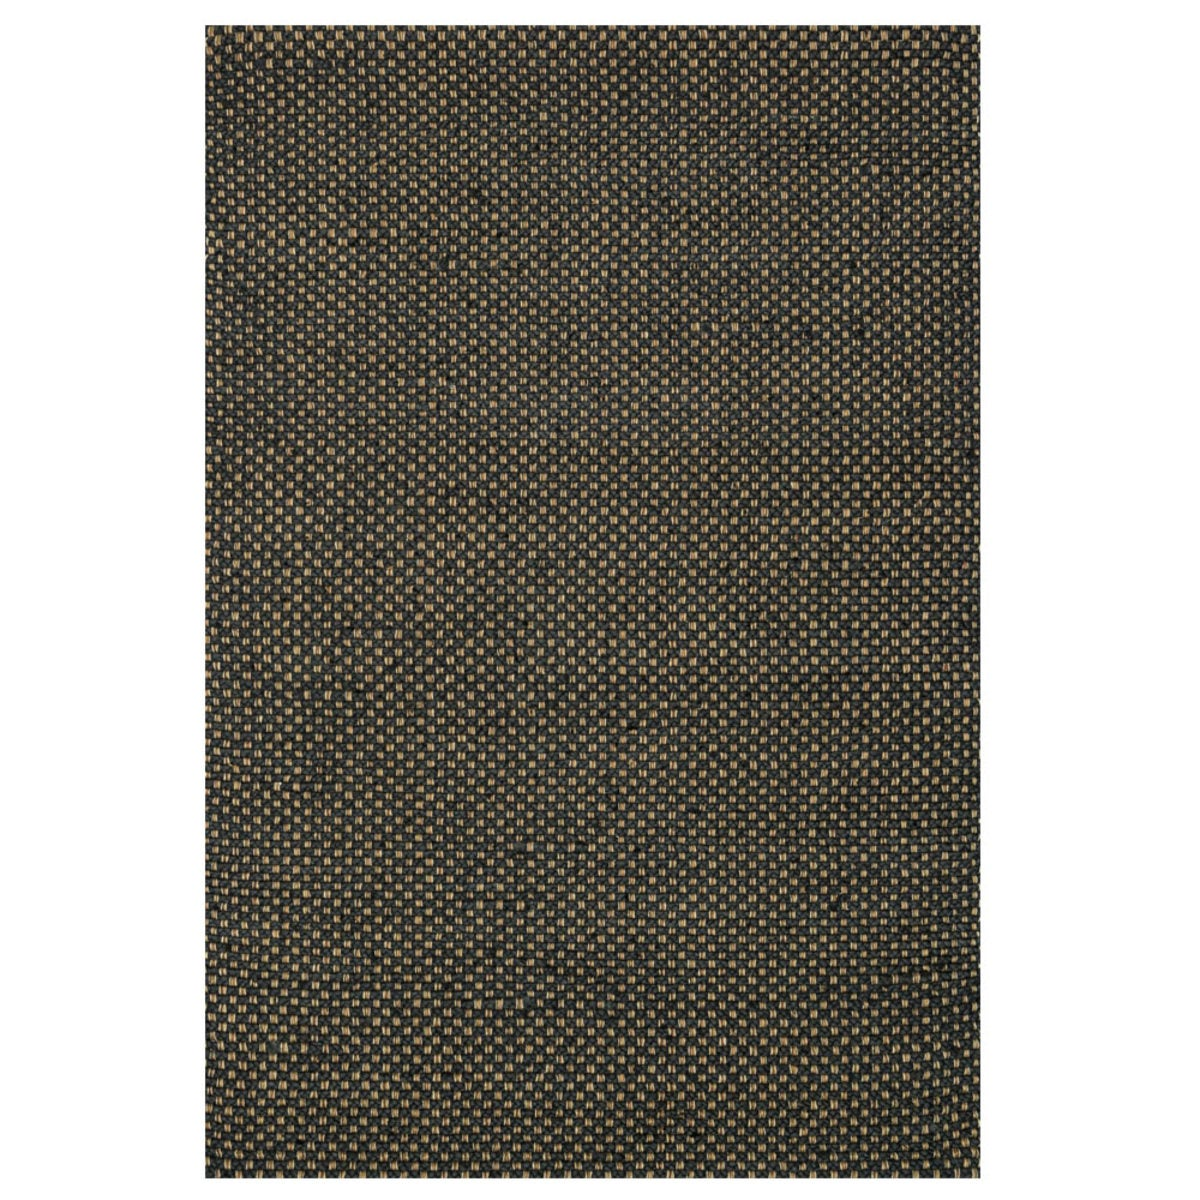 "Loloi Eco Checked Jute Rug in Black - 7'9"" x 9'9"" - Black"